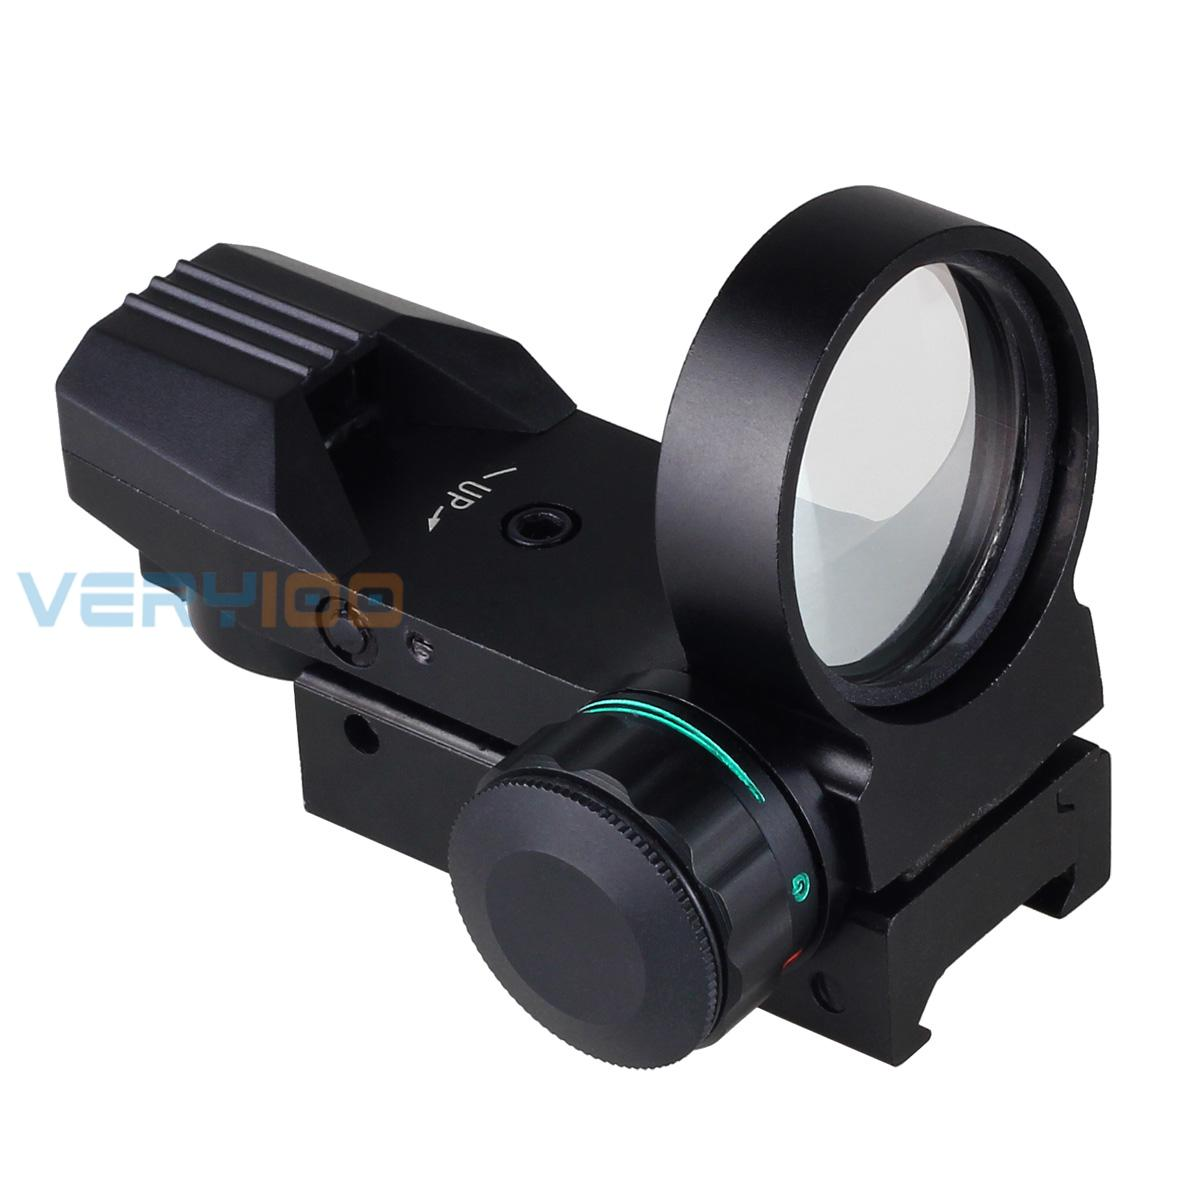 33mm Electro Holographic 4 Type Reticle Red & Green Dot Reflex Sight Scope Free Shipping!